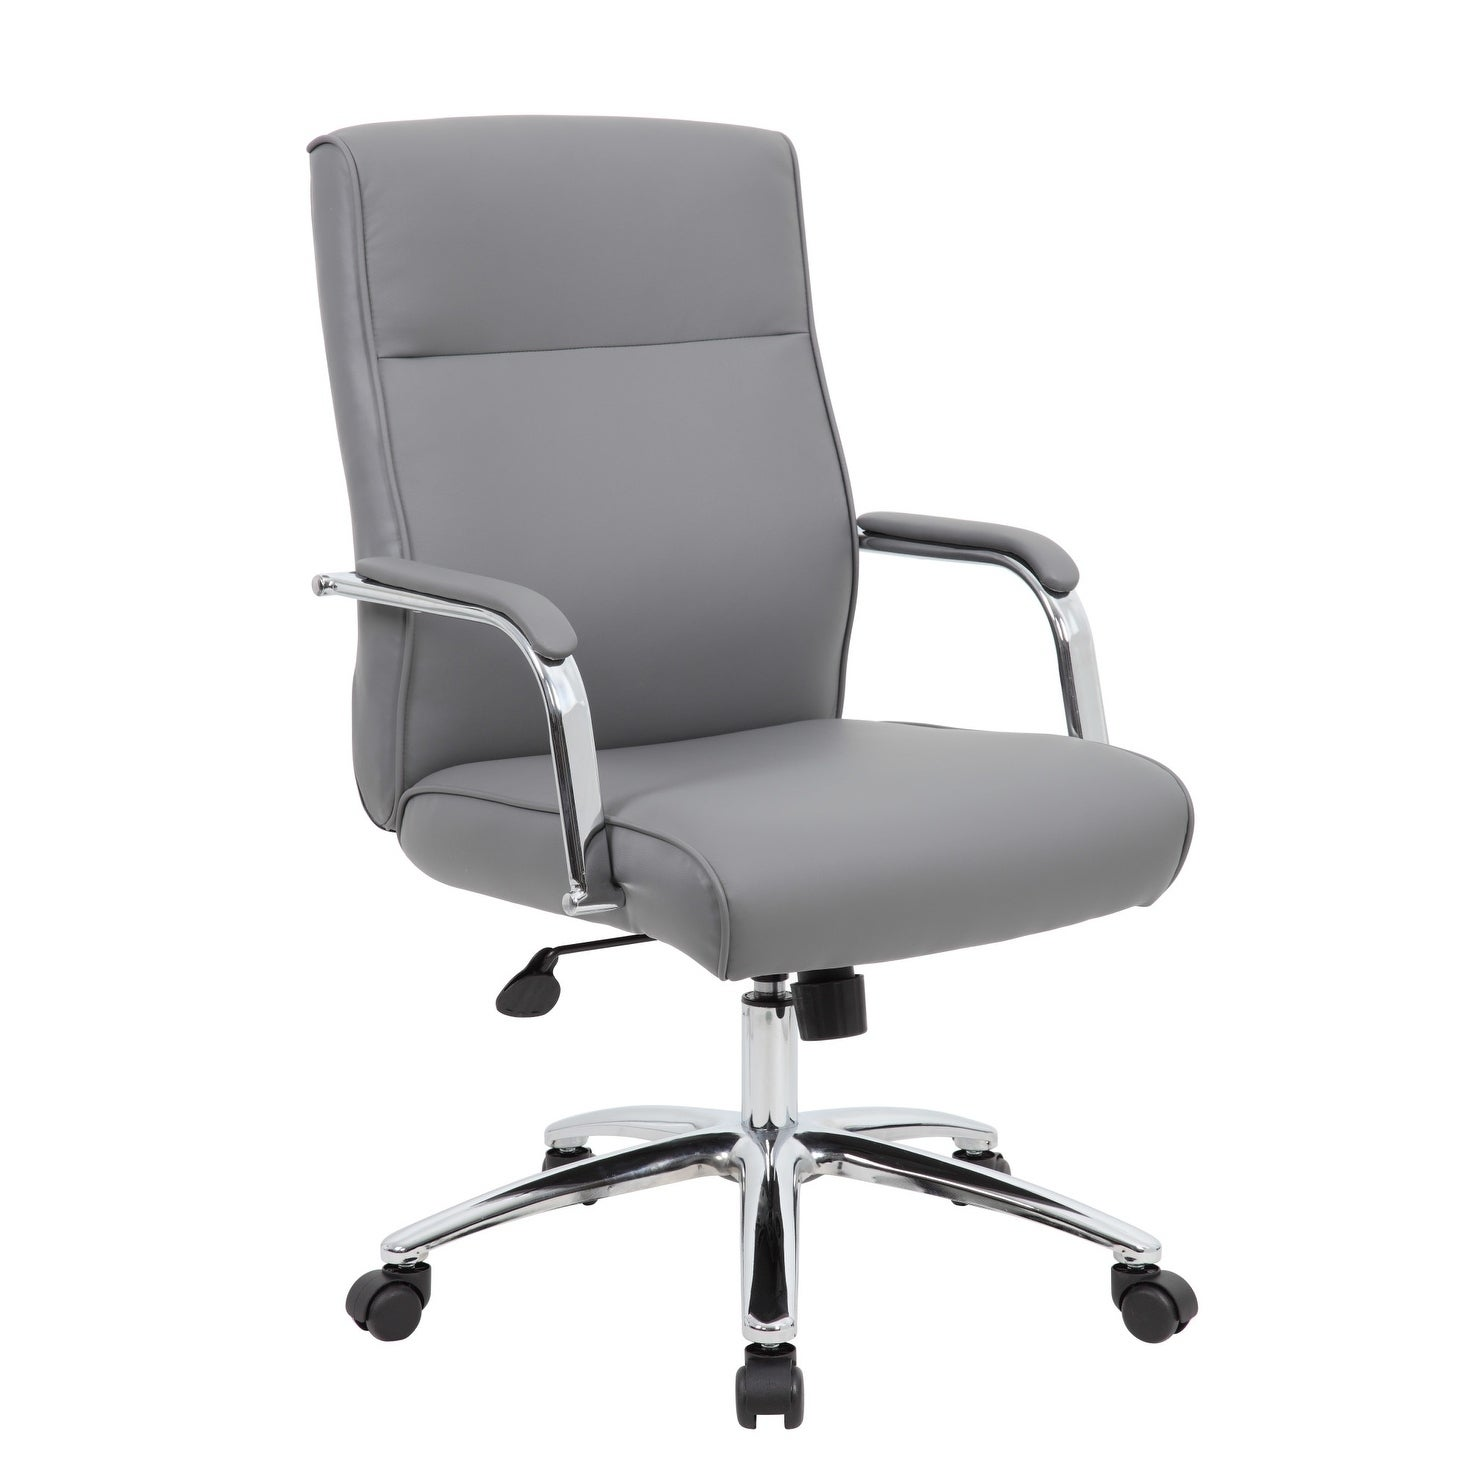 Shop Boss Office Products Modern Executive Conference Chair   Free Shipping  Today   Overstock.com   21945728